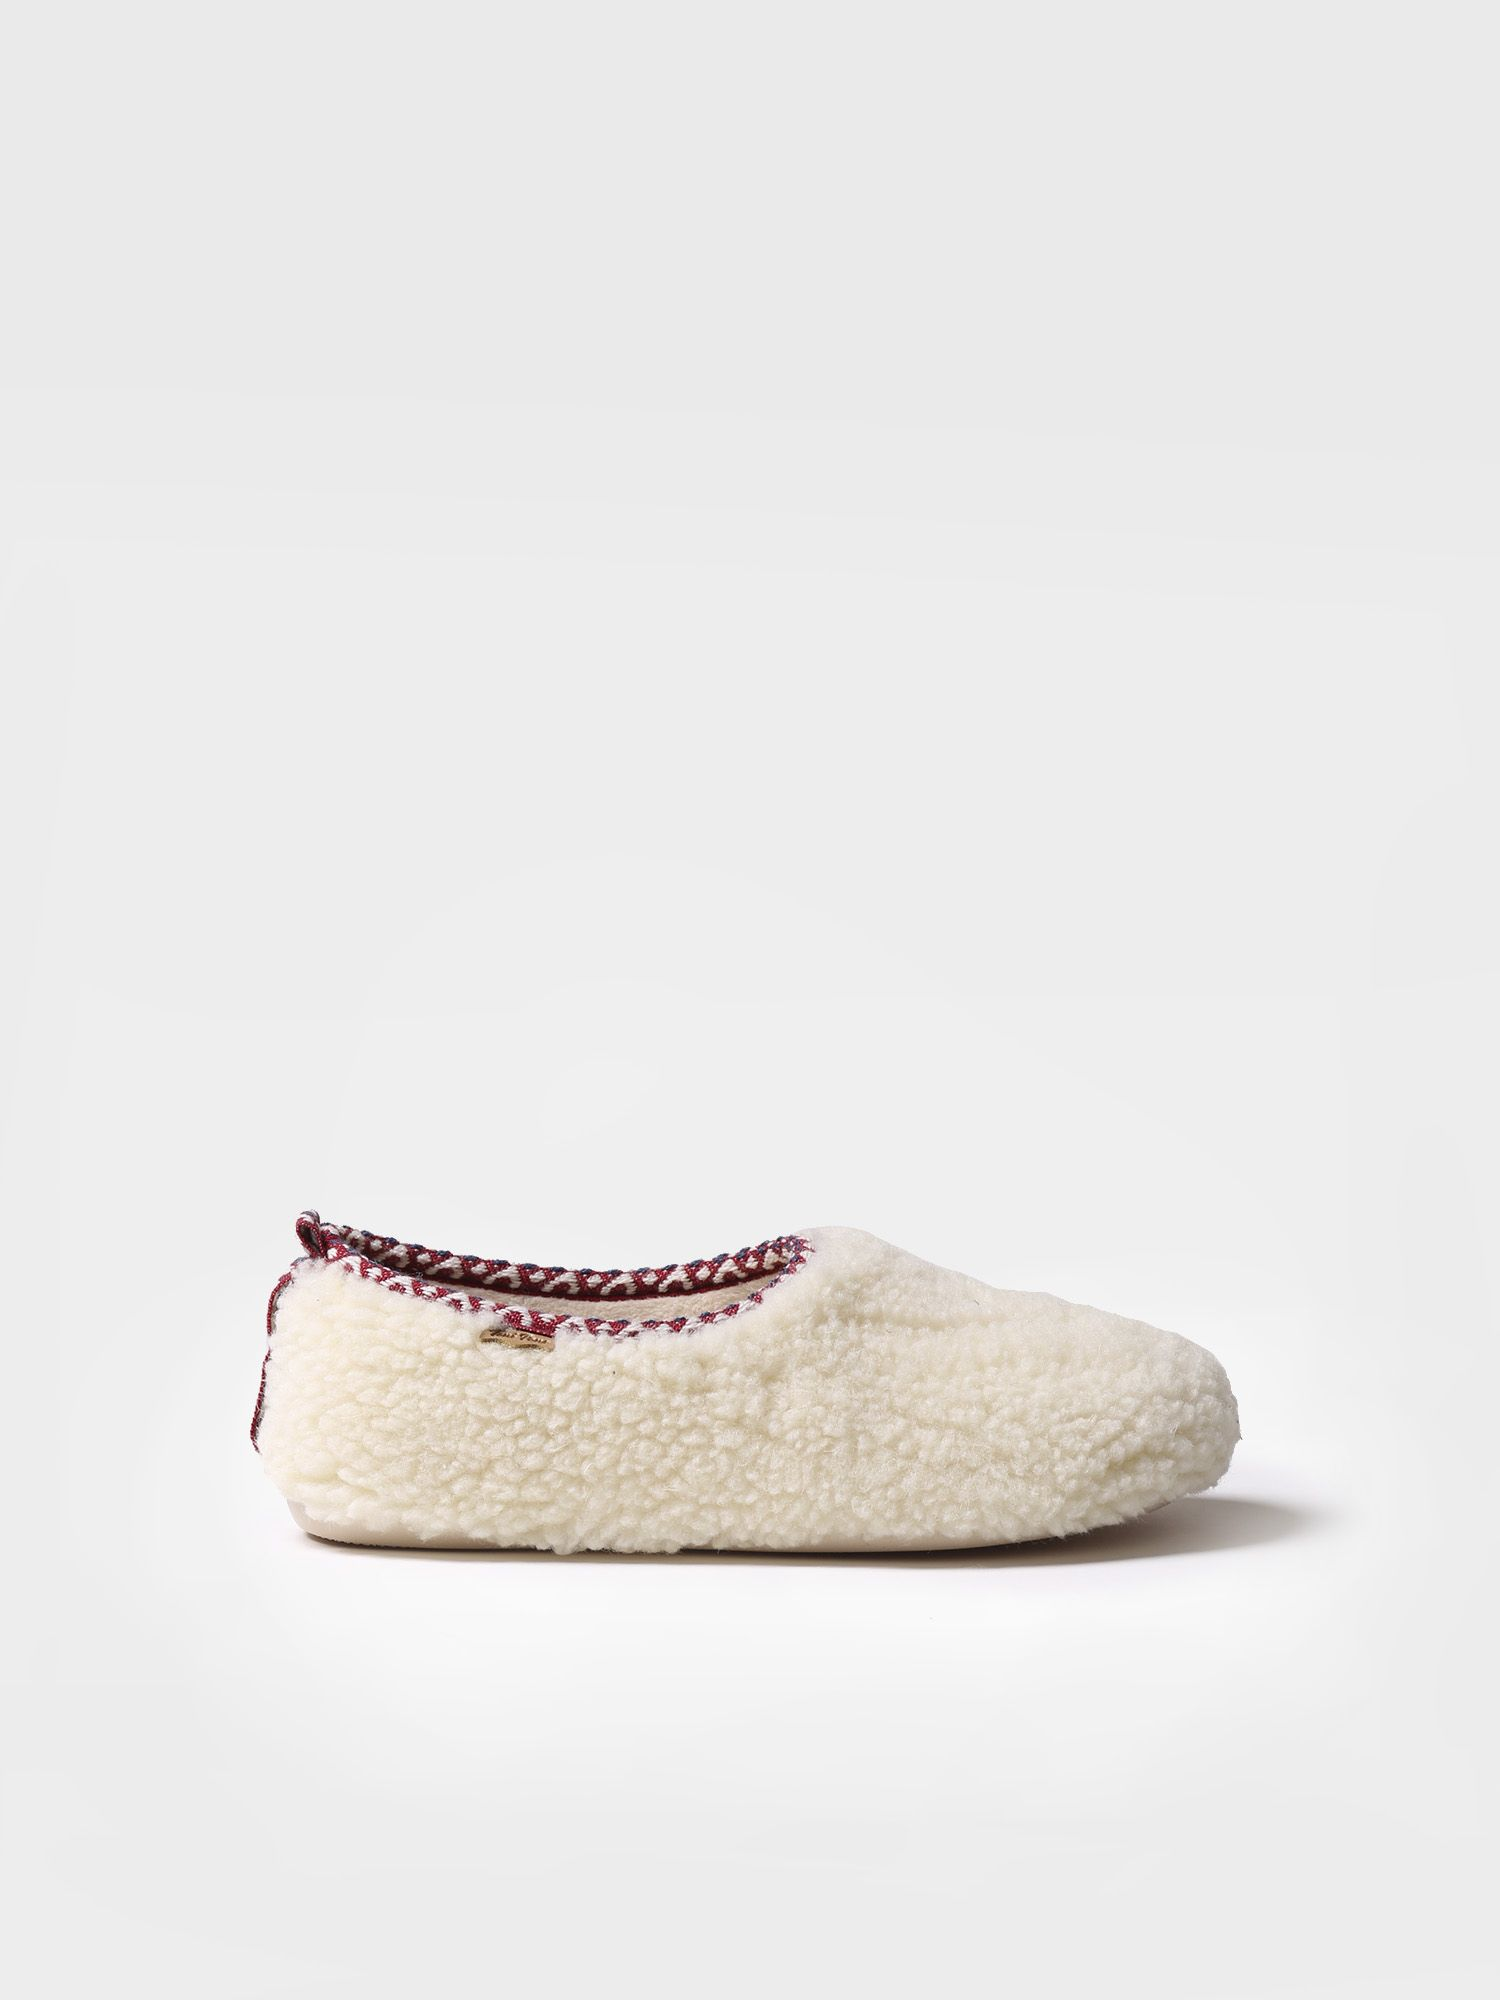 Slipper for women made of fabric - MARTA-SH